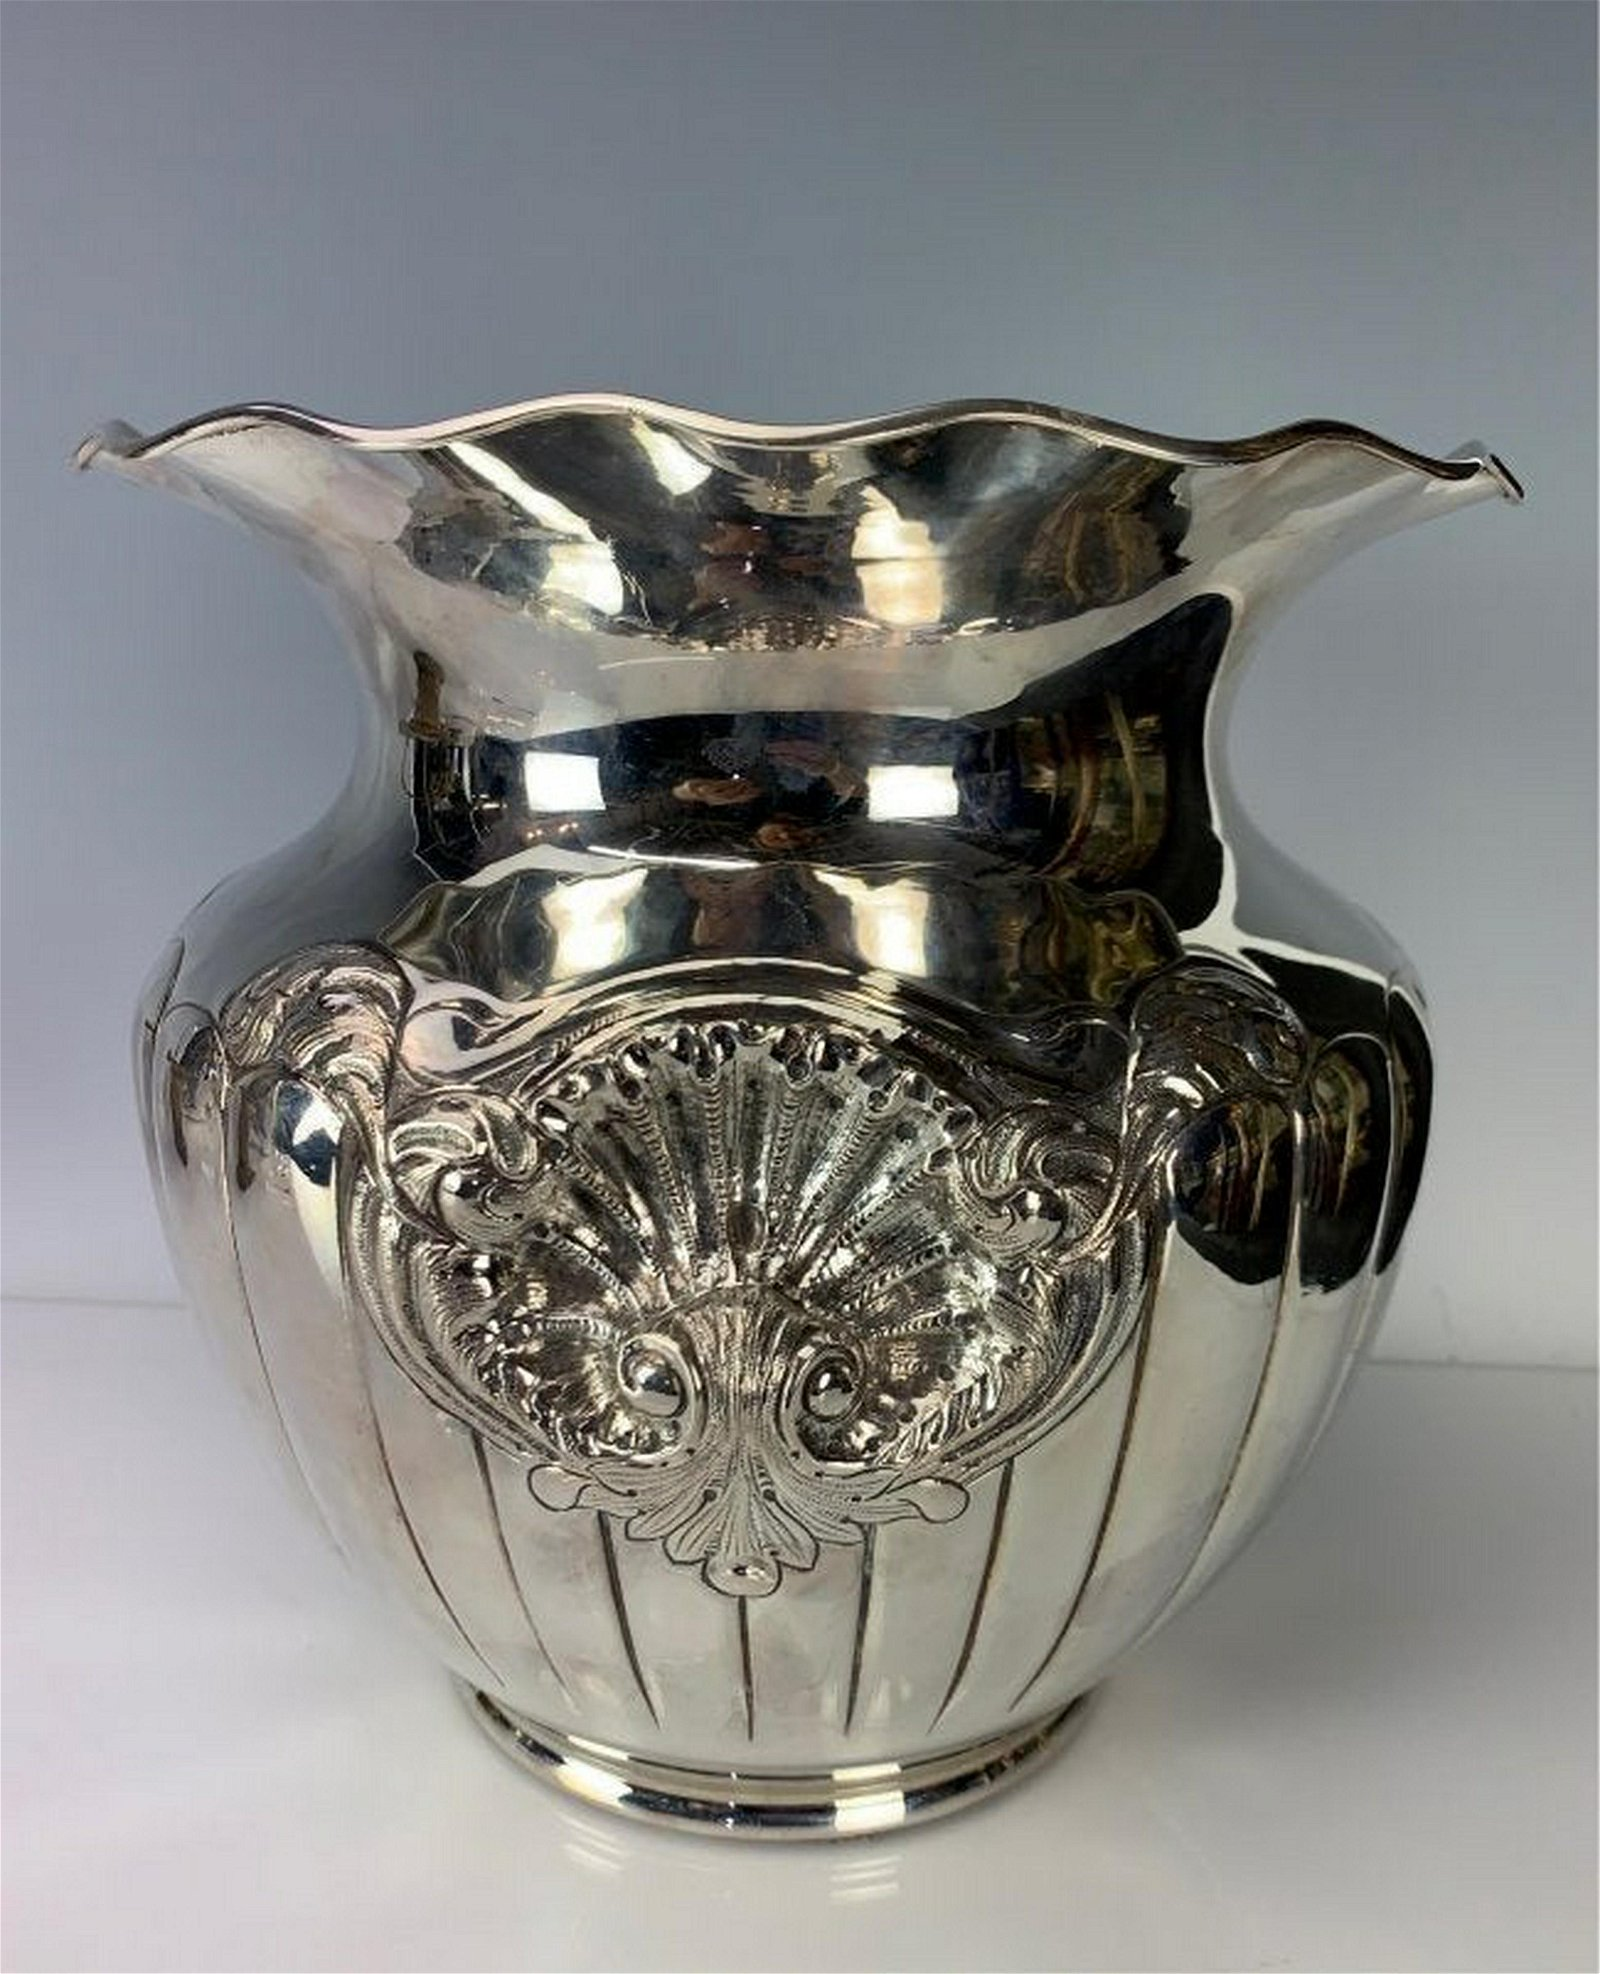 A LARGE ITALIAN STERLING SILVER VASE